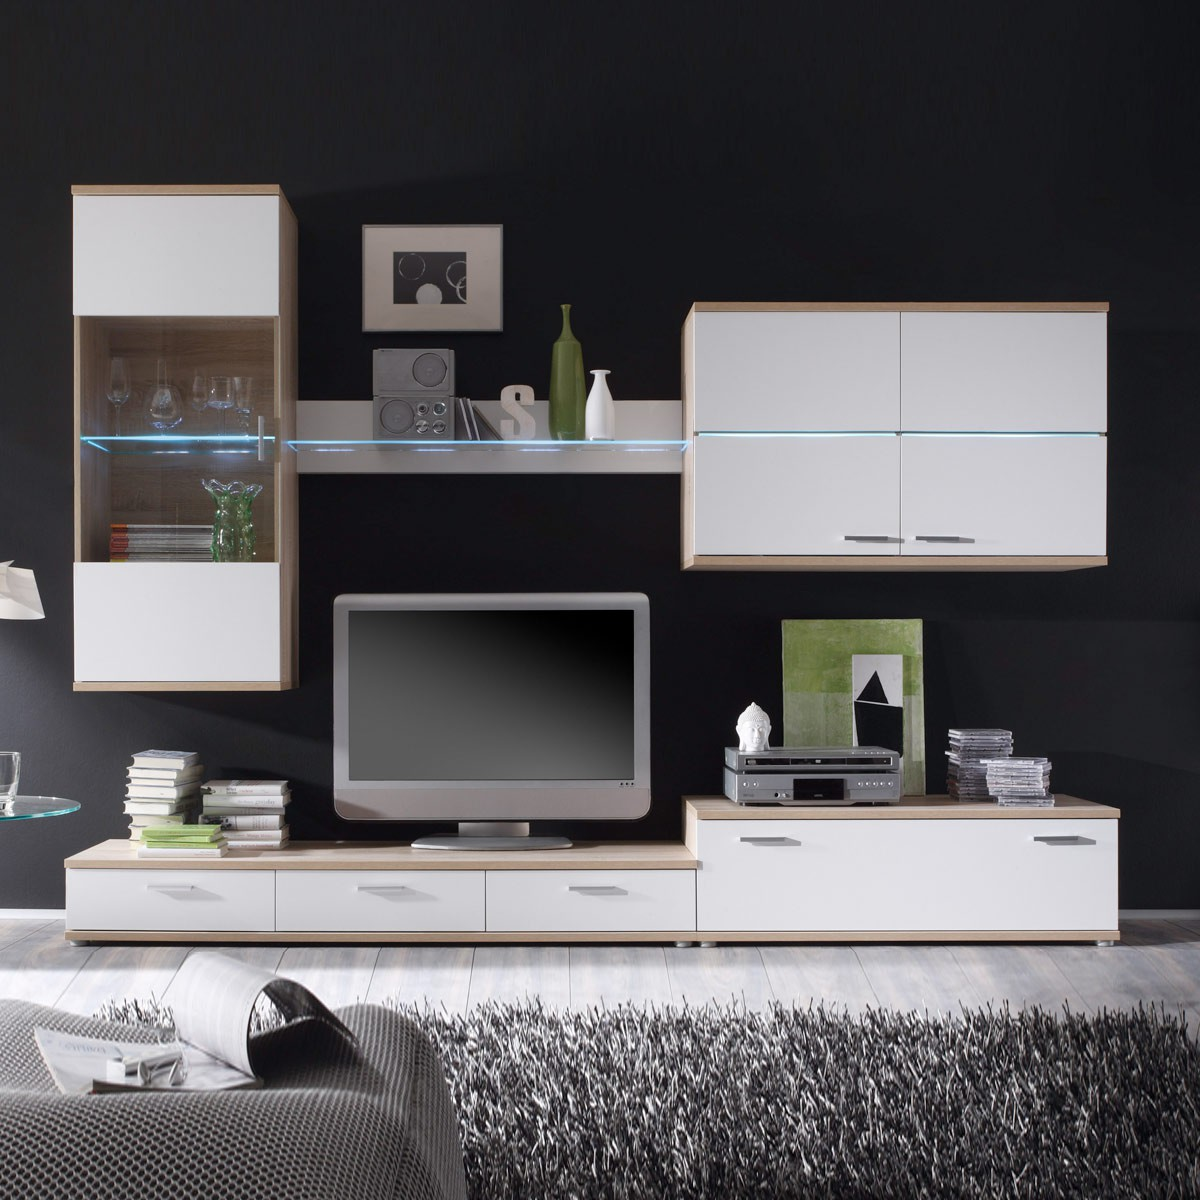 wohnwand adelle in wei sonoma eiche mit led beleuchtung. Black Bedroom Furniture Sets. Home Design Ideas